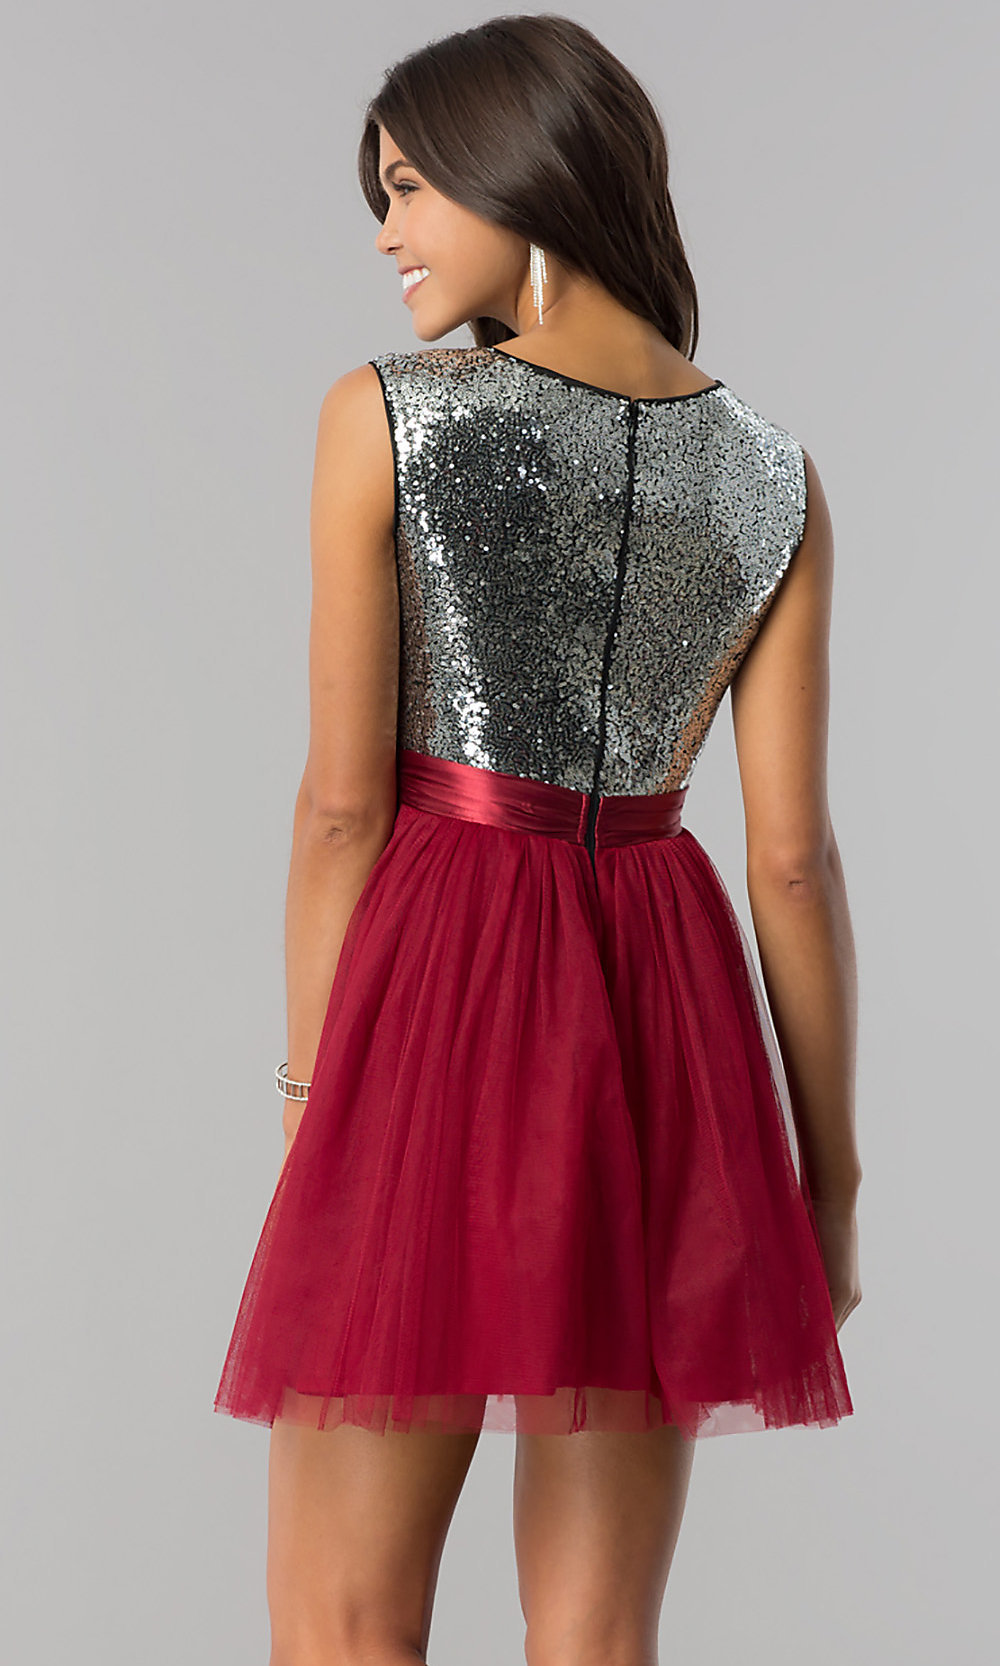 be8fbbc346 Burgundy and Silver Short Homecoming Dress - PromGirl